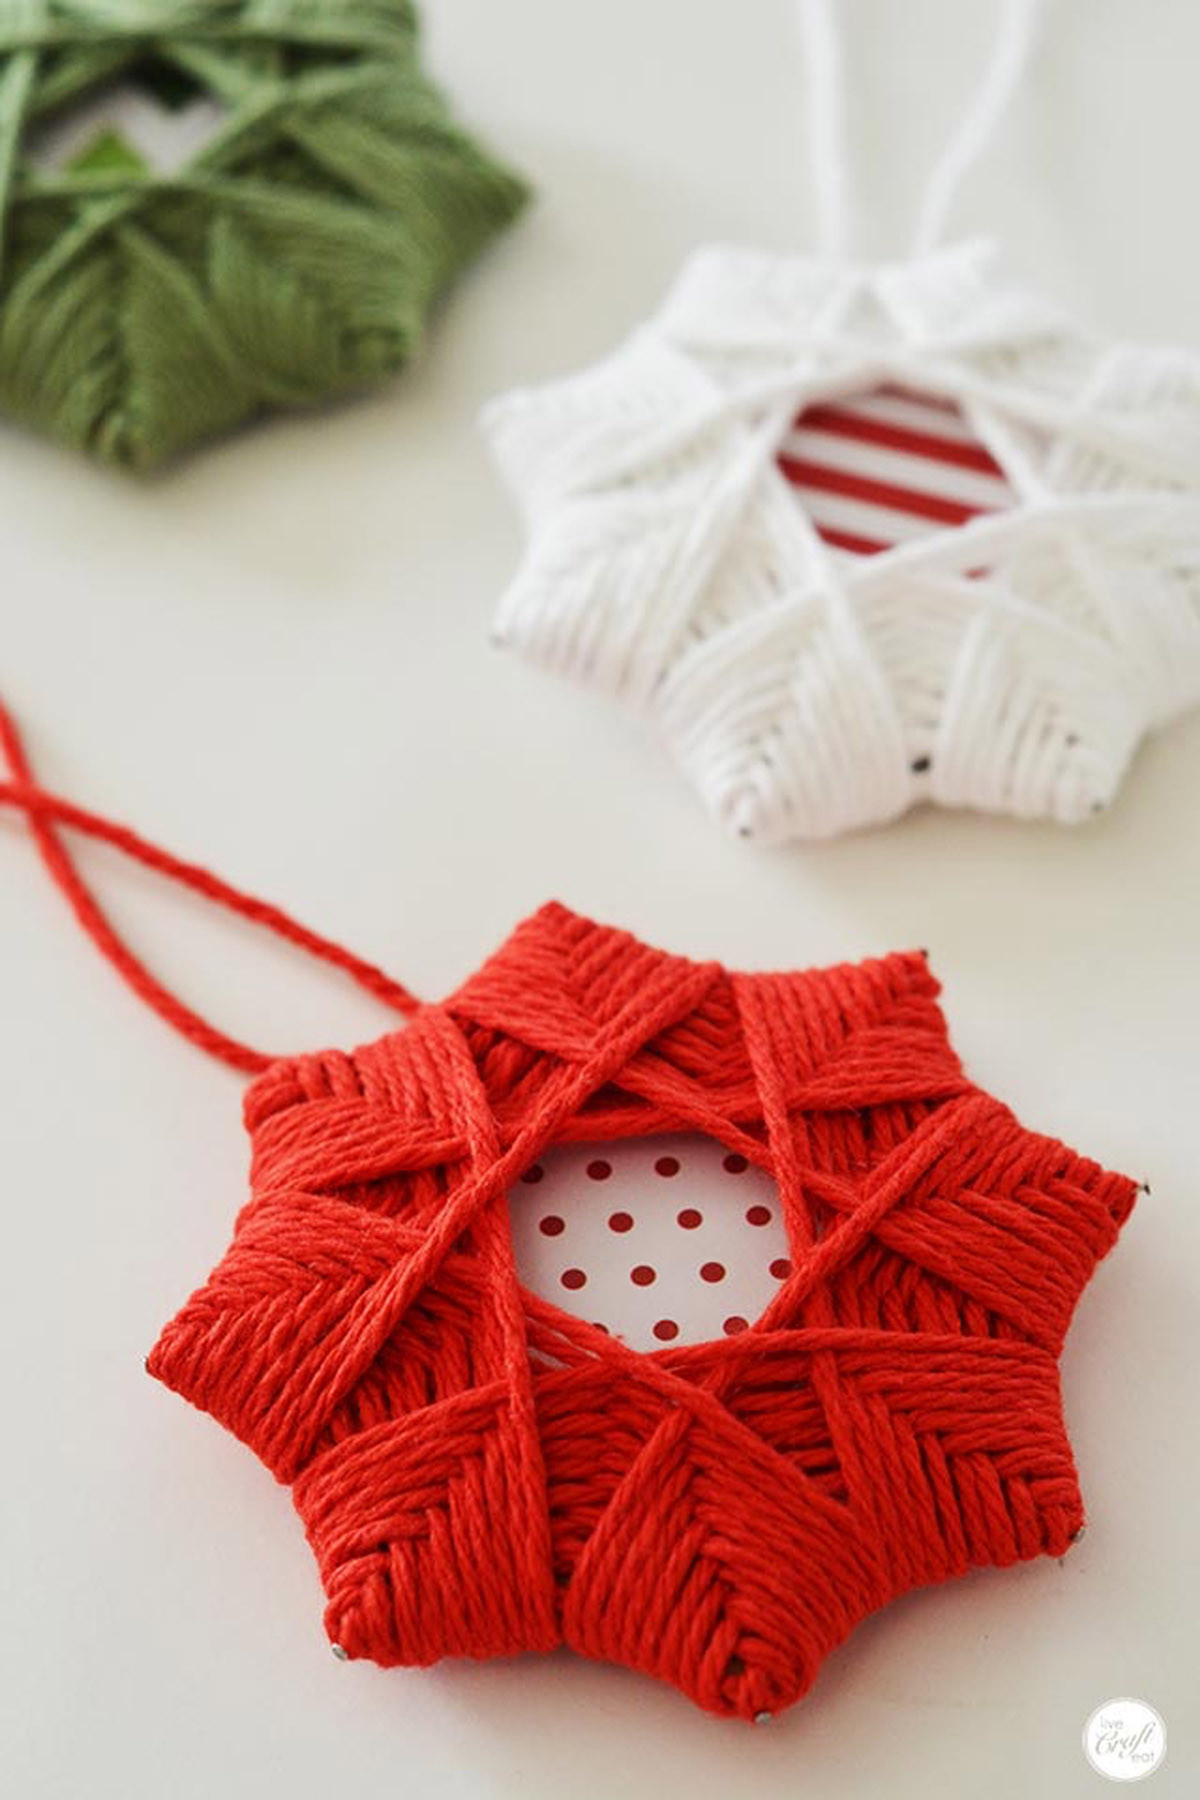 Best ideas about DIY Christmas Ornament . Save or Pin 29 Homemade DIY Christmas Ornament Craft Ideas How To Now.